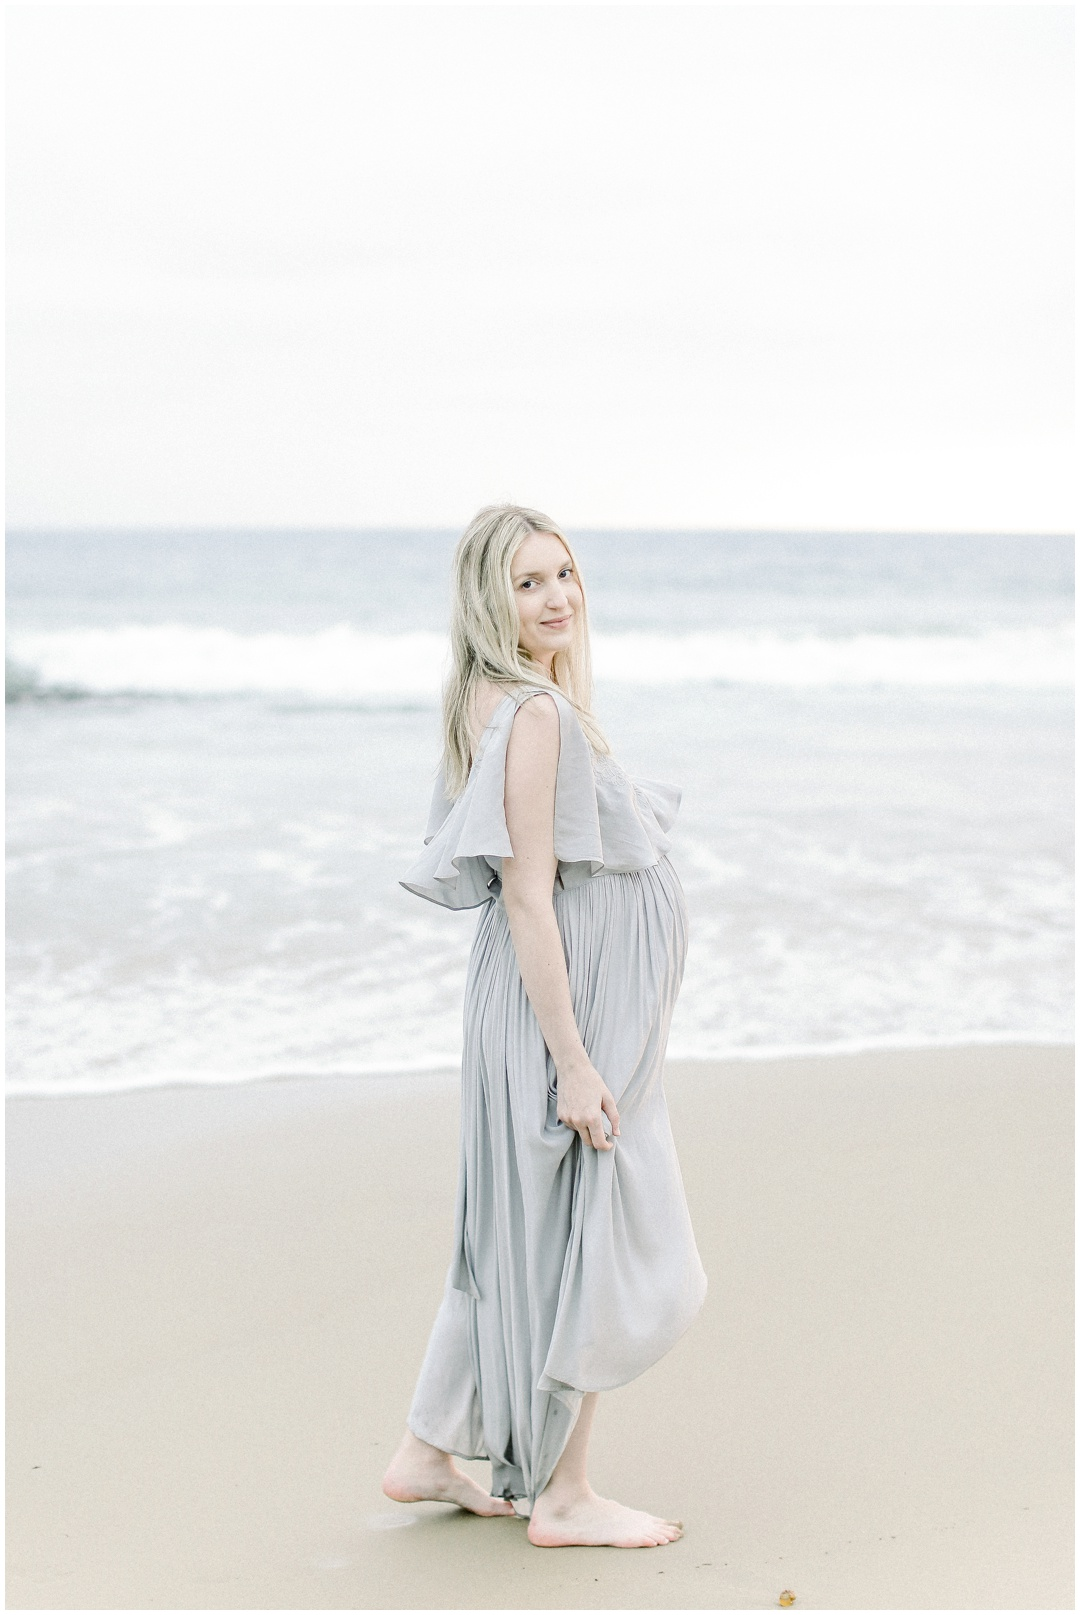 Newport_Beach_Newborn_Light_Airy_Natural_Photographer_Newport_Beach_Photographer_Orange_County_Family_Photographer_Cori_Kleckner_Photography_Huntington_Beach_Photographer_Family_OC_Maternity_Jennifer_Spohn_Rahul_Spohn_3623.jpg